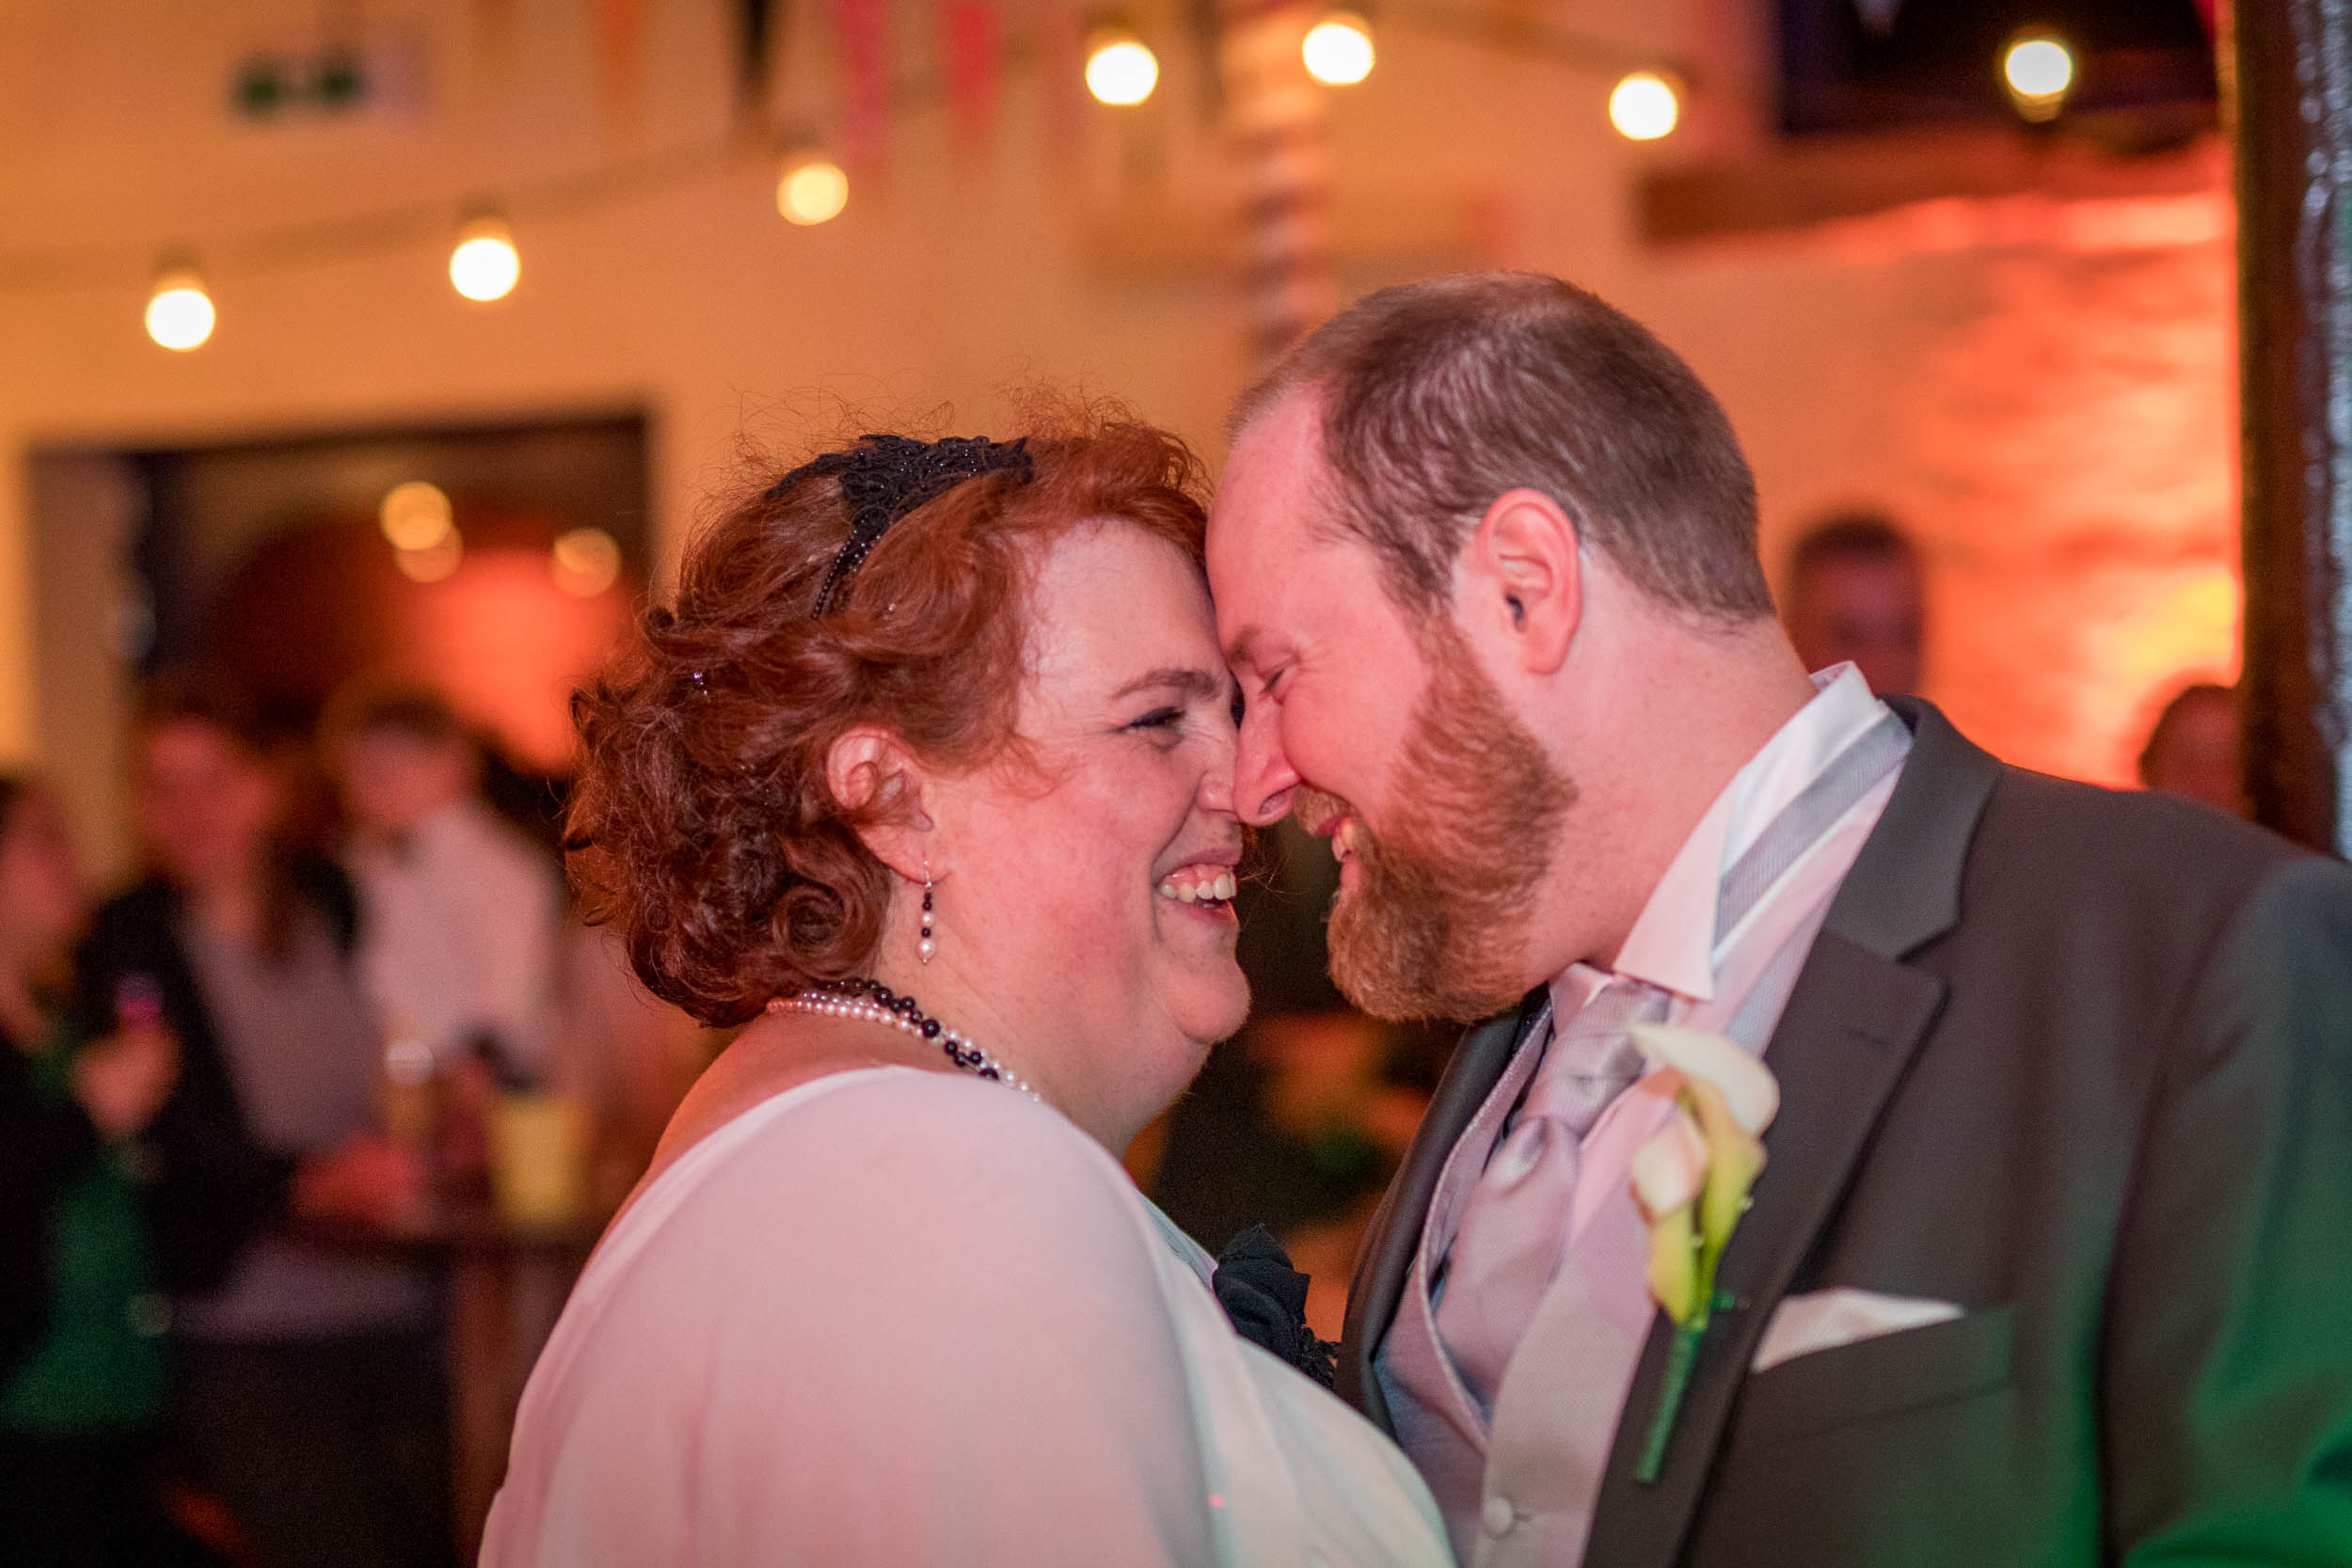 Photo report at a wedding